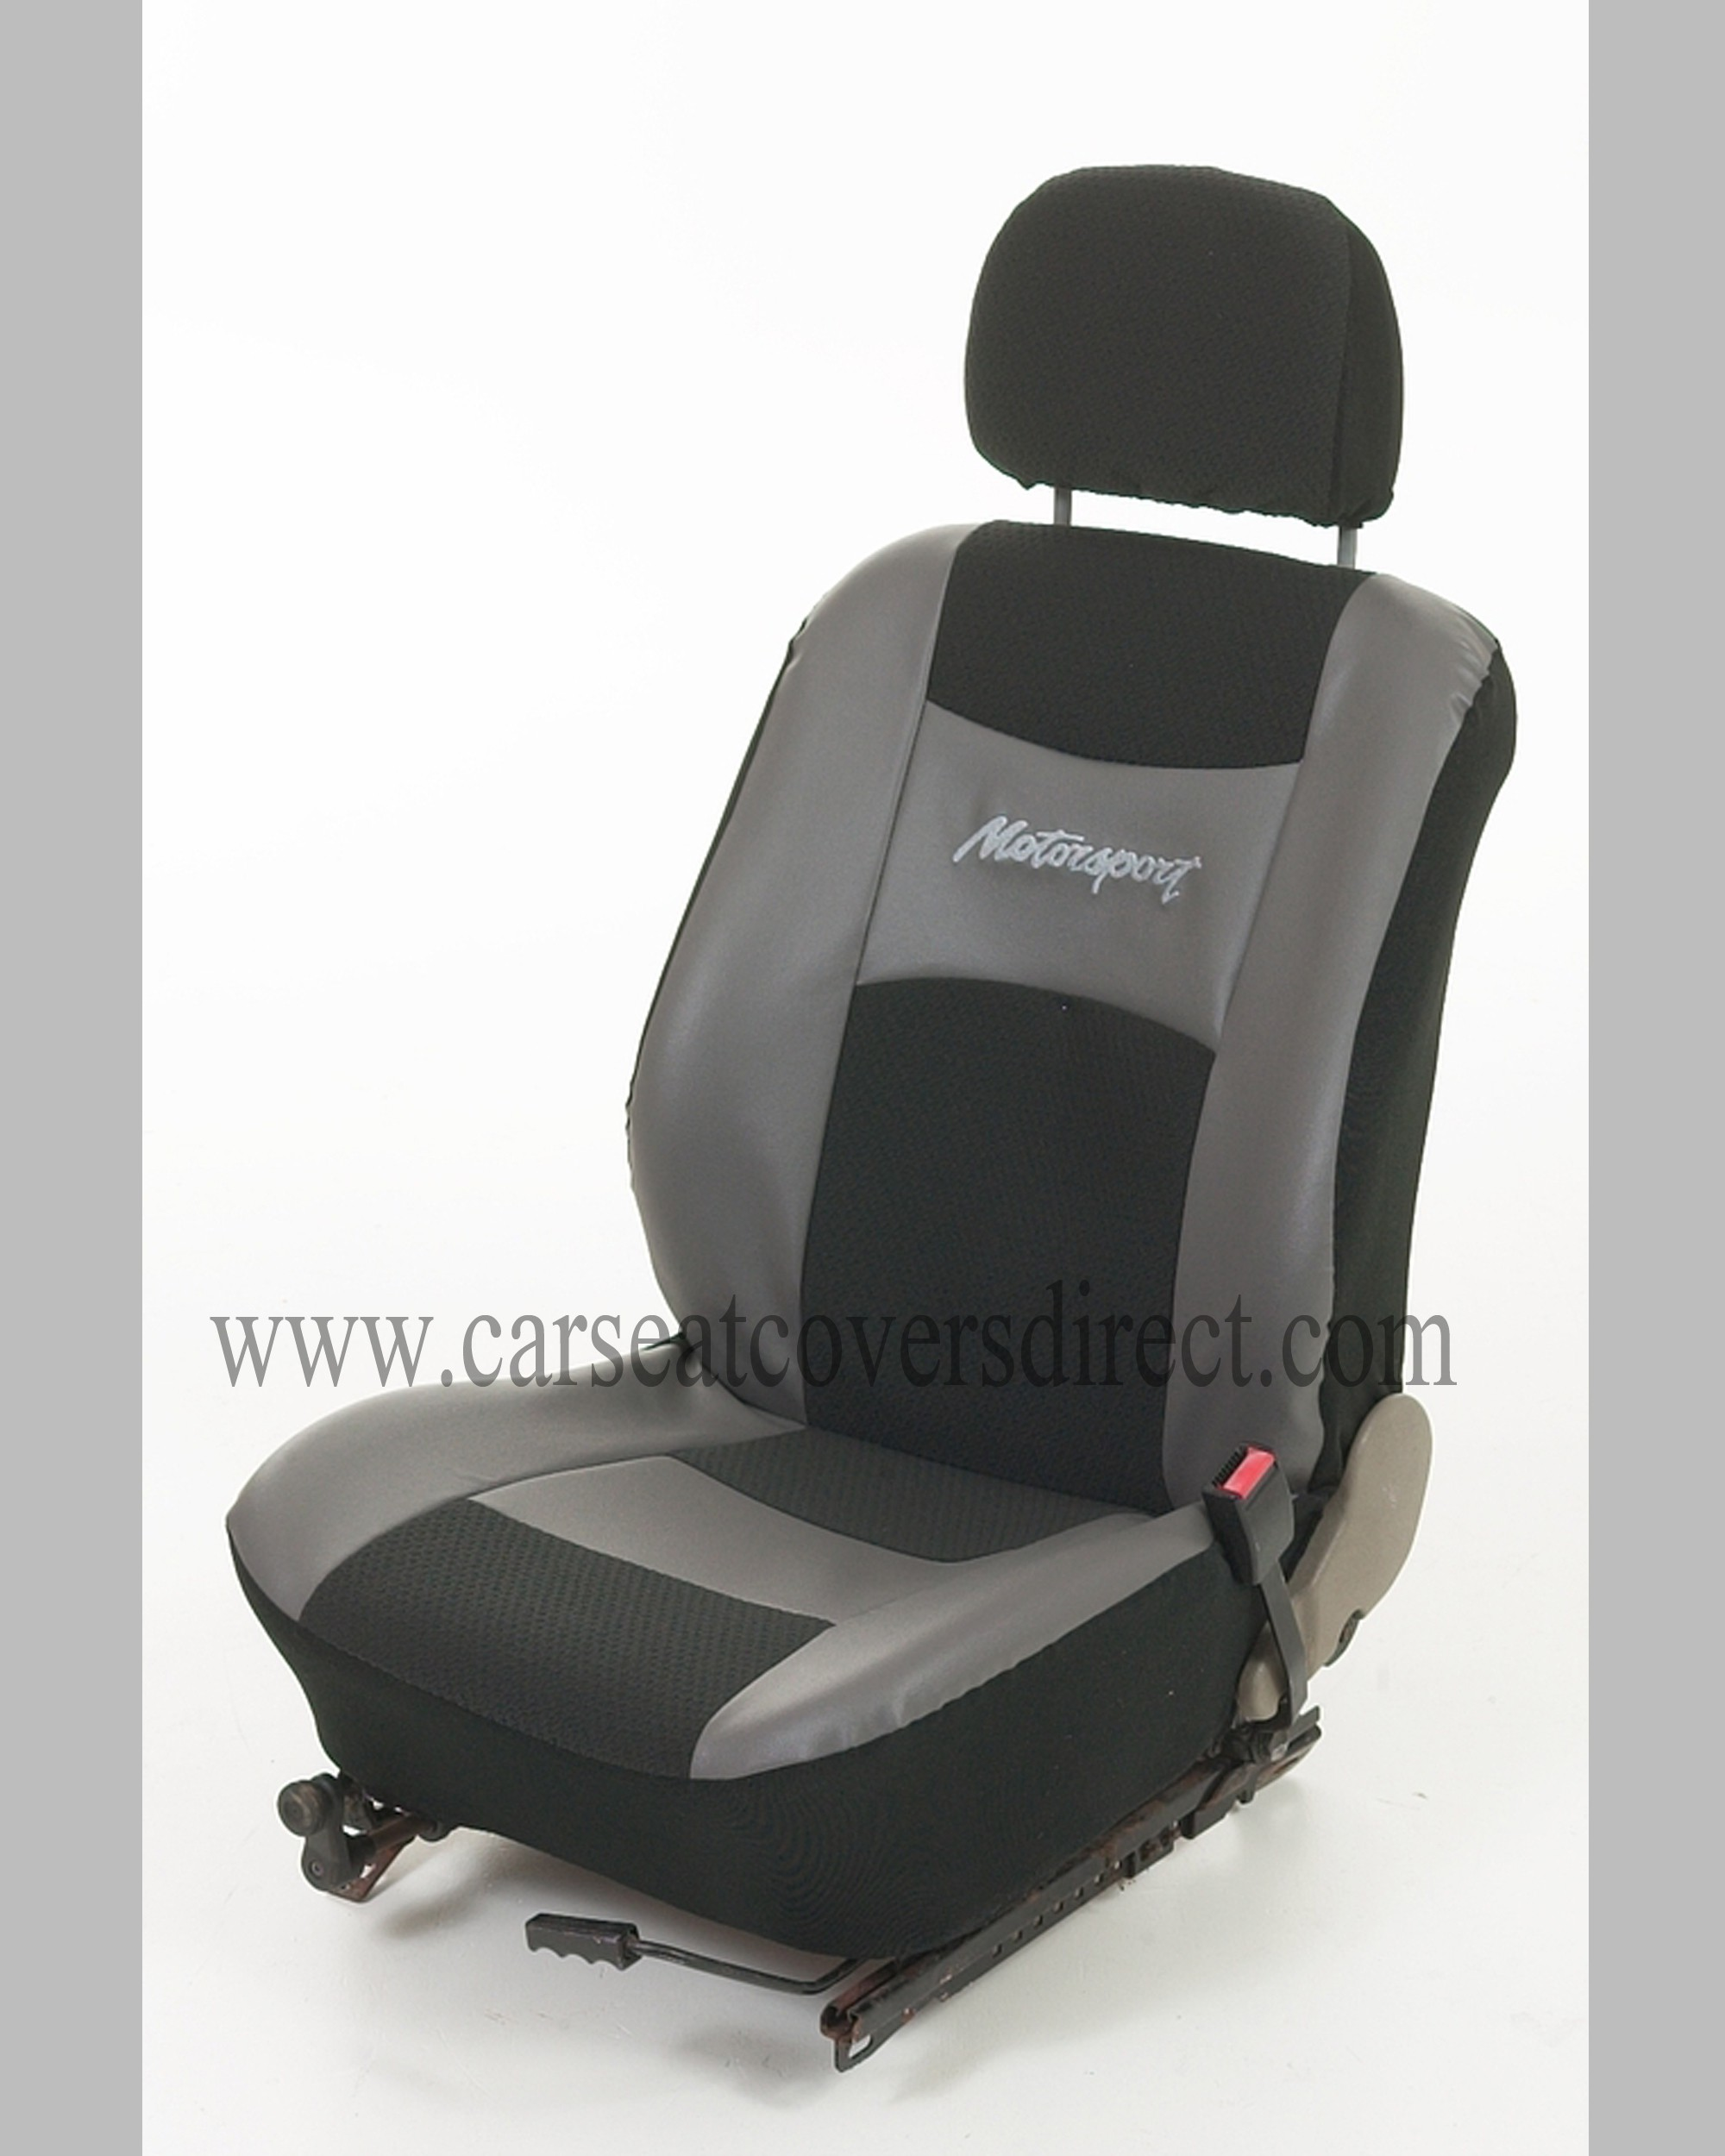 Motorsport UNIVERSAL Seat Covers (grey)